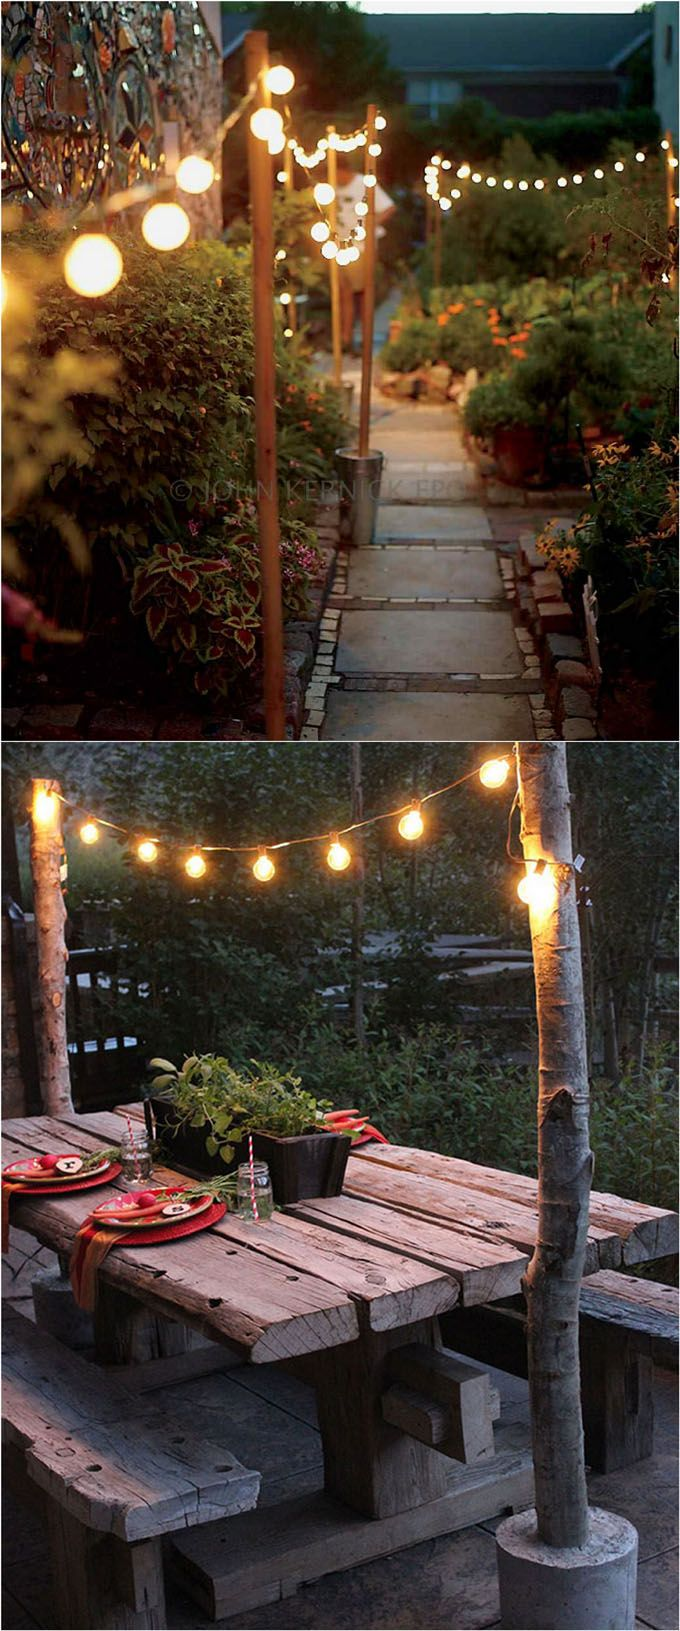 DIY-outdoor-lights-apieceofrainbowblog (3)